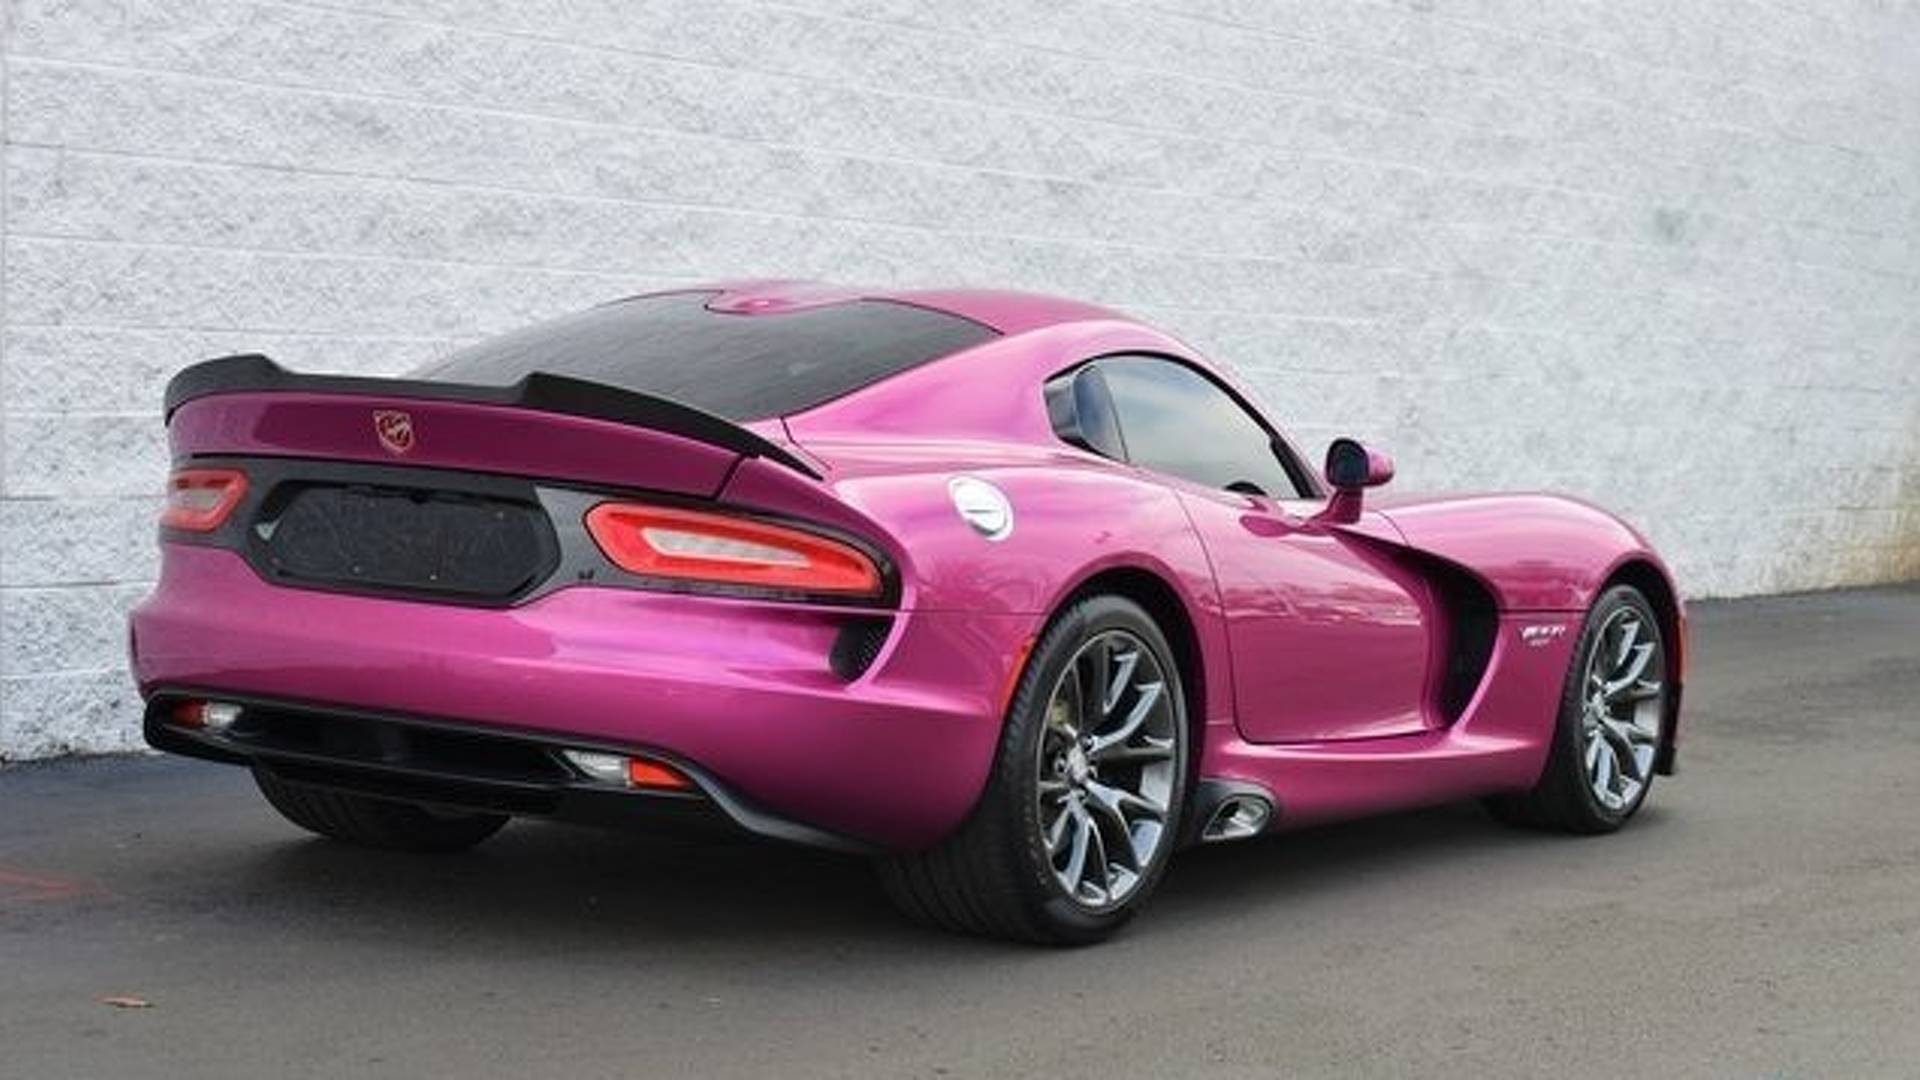 2017_Dodge_Viper_Metallic_Pink_0018